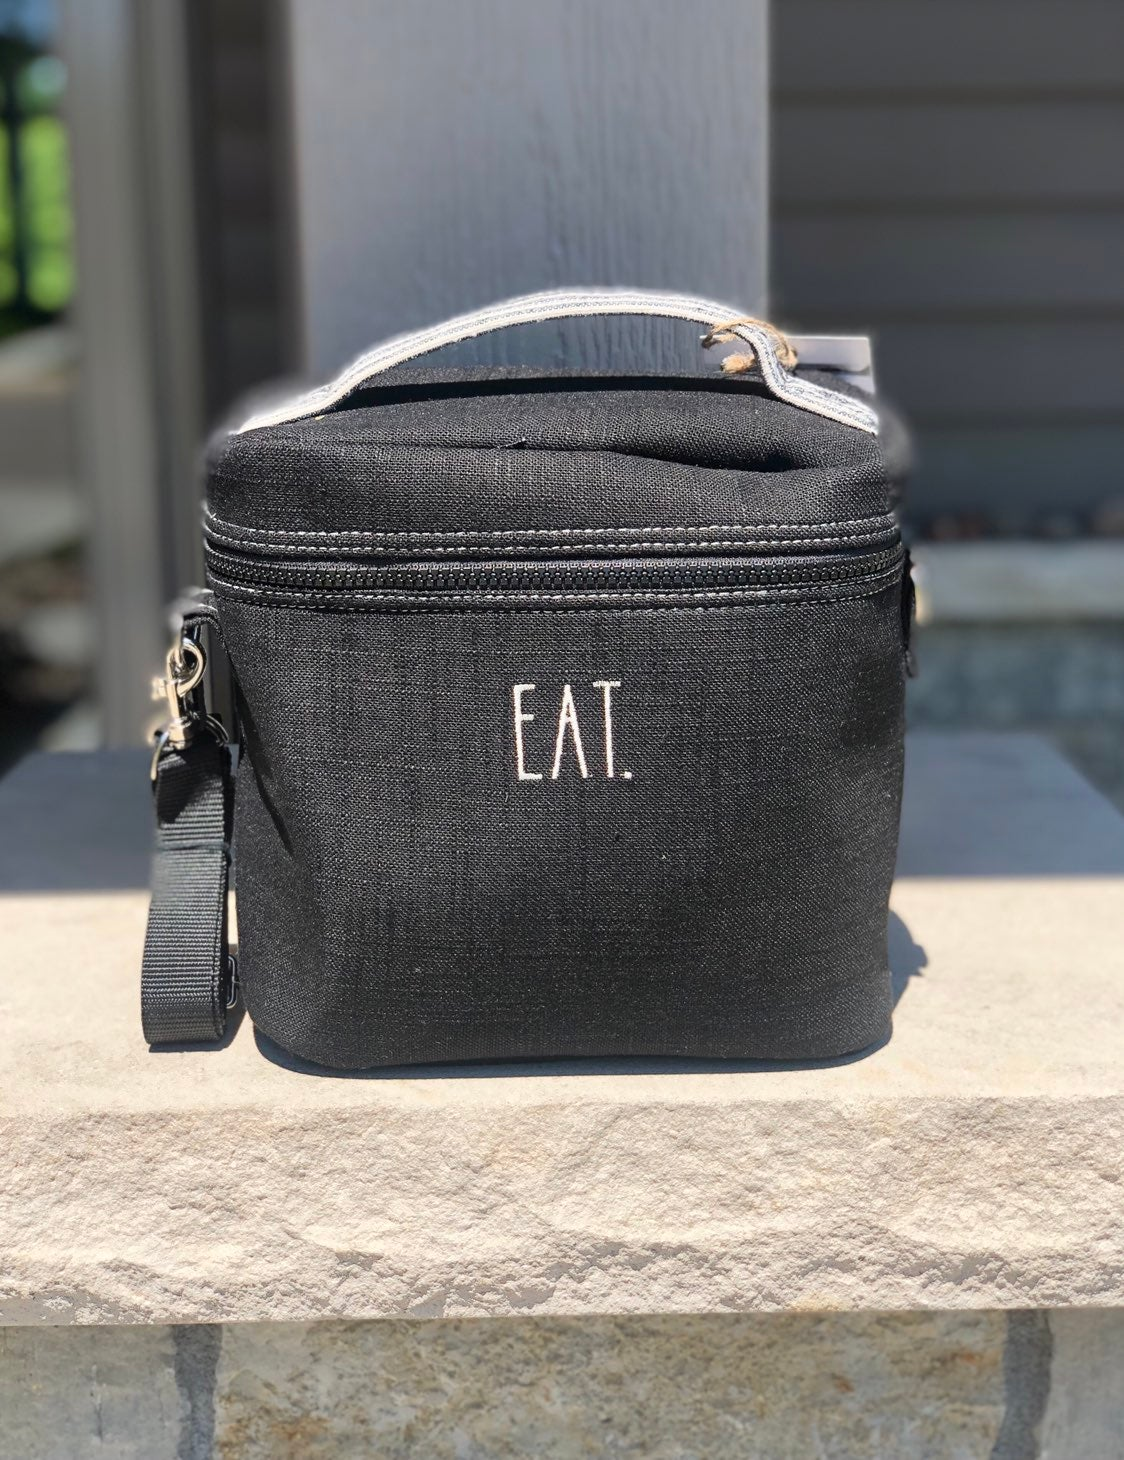 Rae Dunn Lunch Tote Bag insulated